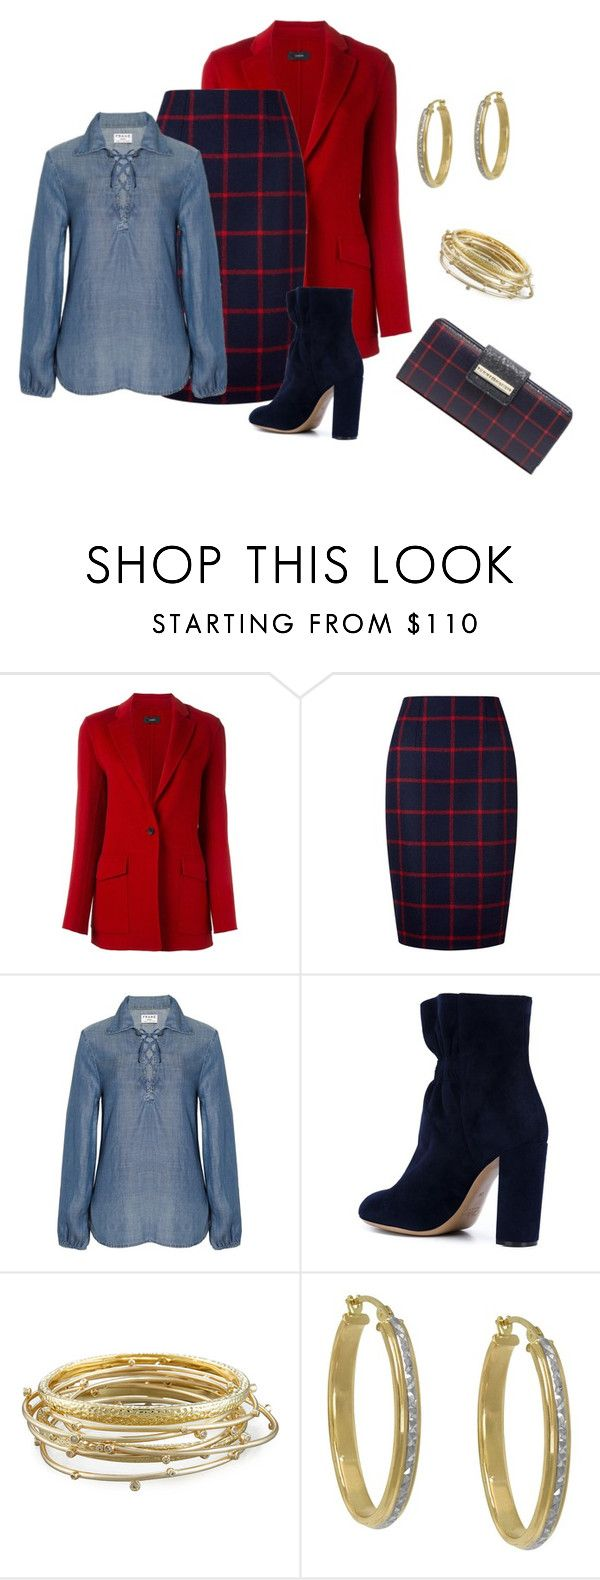 """""""DEAL ME IN"""" by polishedplus ❤ liked on Polyvore featuring Joseph, Hobbs, Frame, Chloé, Kendra Scott, Stanley Furniture and Tommy Hilfiger"""